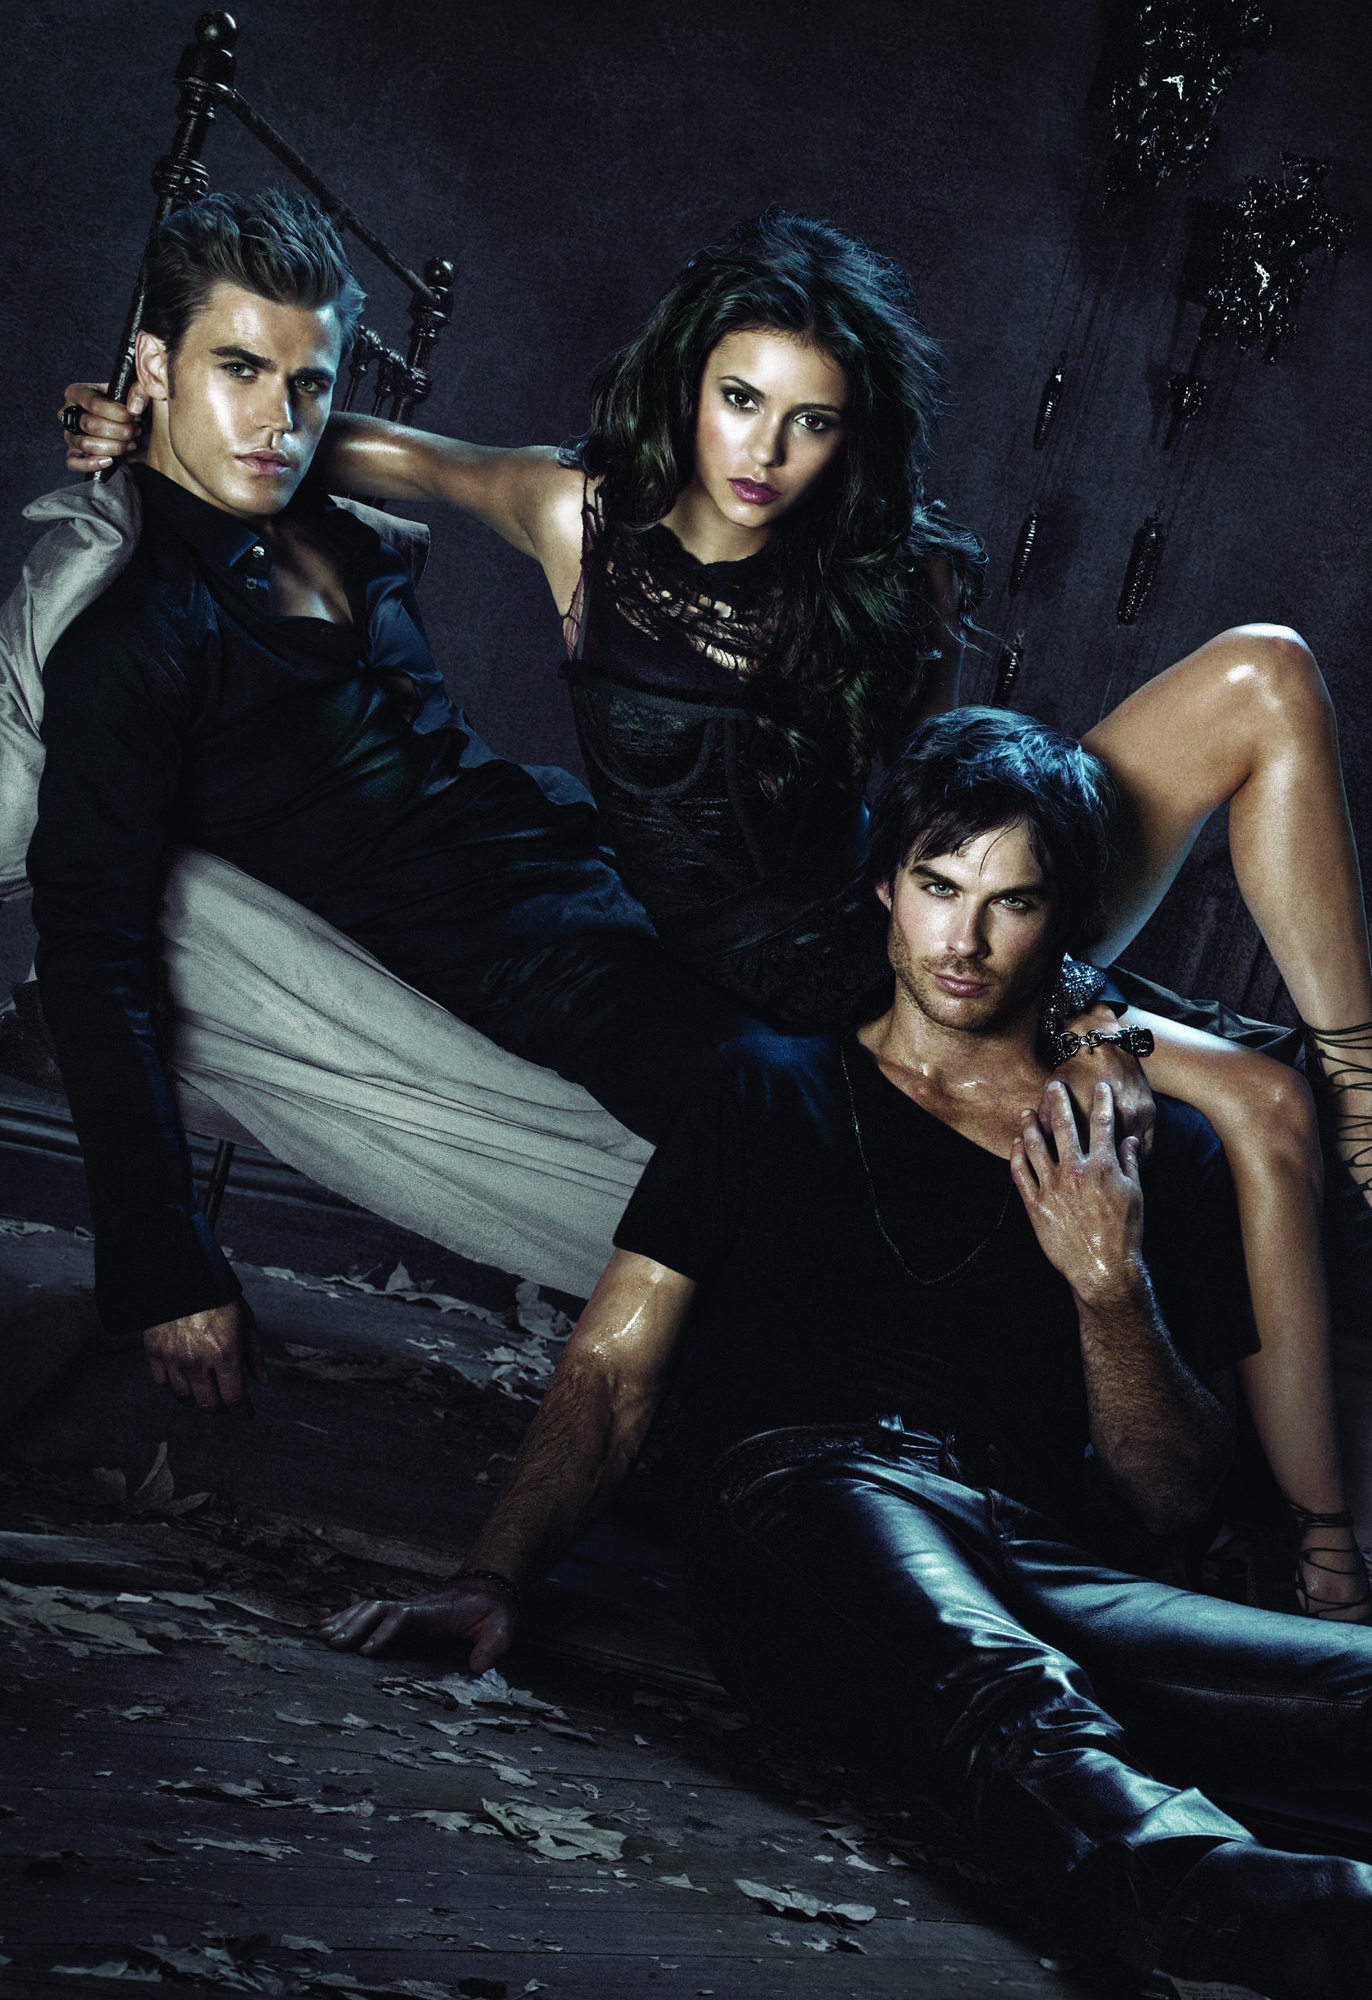 21807 download wallpaper Cinema, People, Actors, Vampire Diaries screensavers and pictures for free